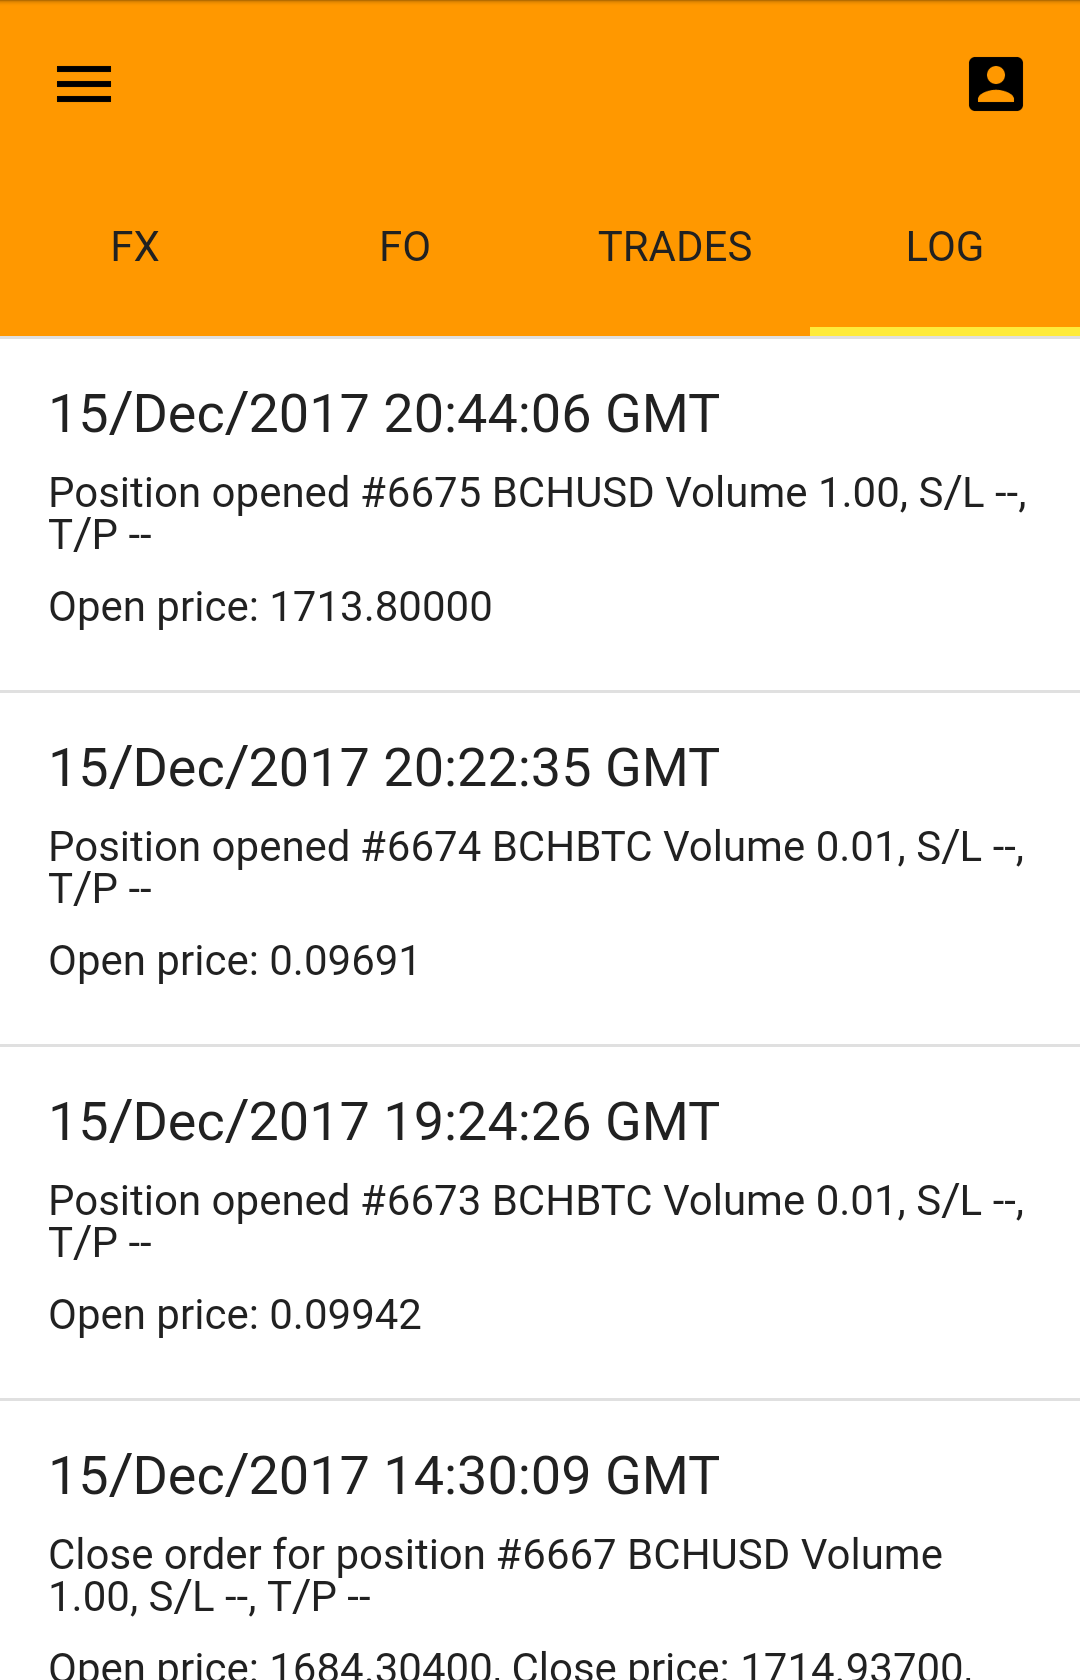 how to use metatrader 4 mobile app